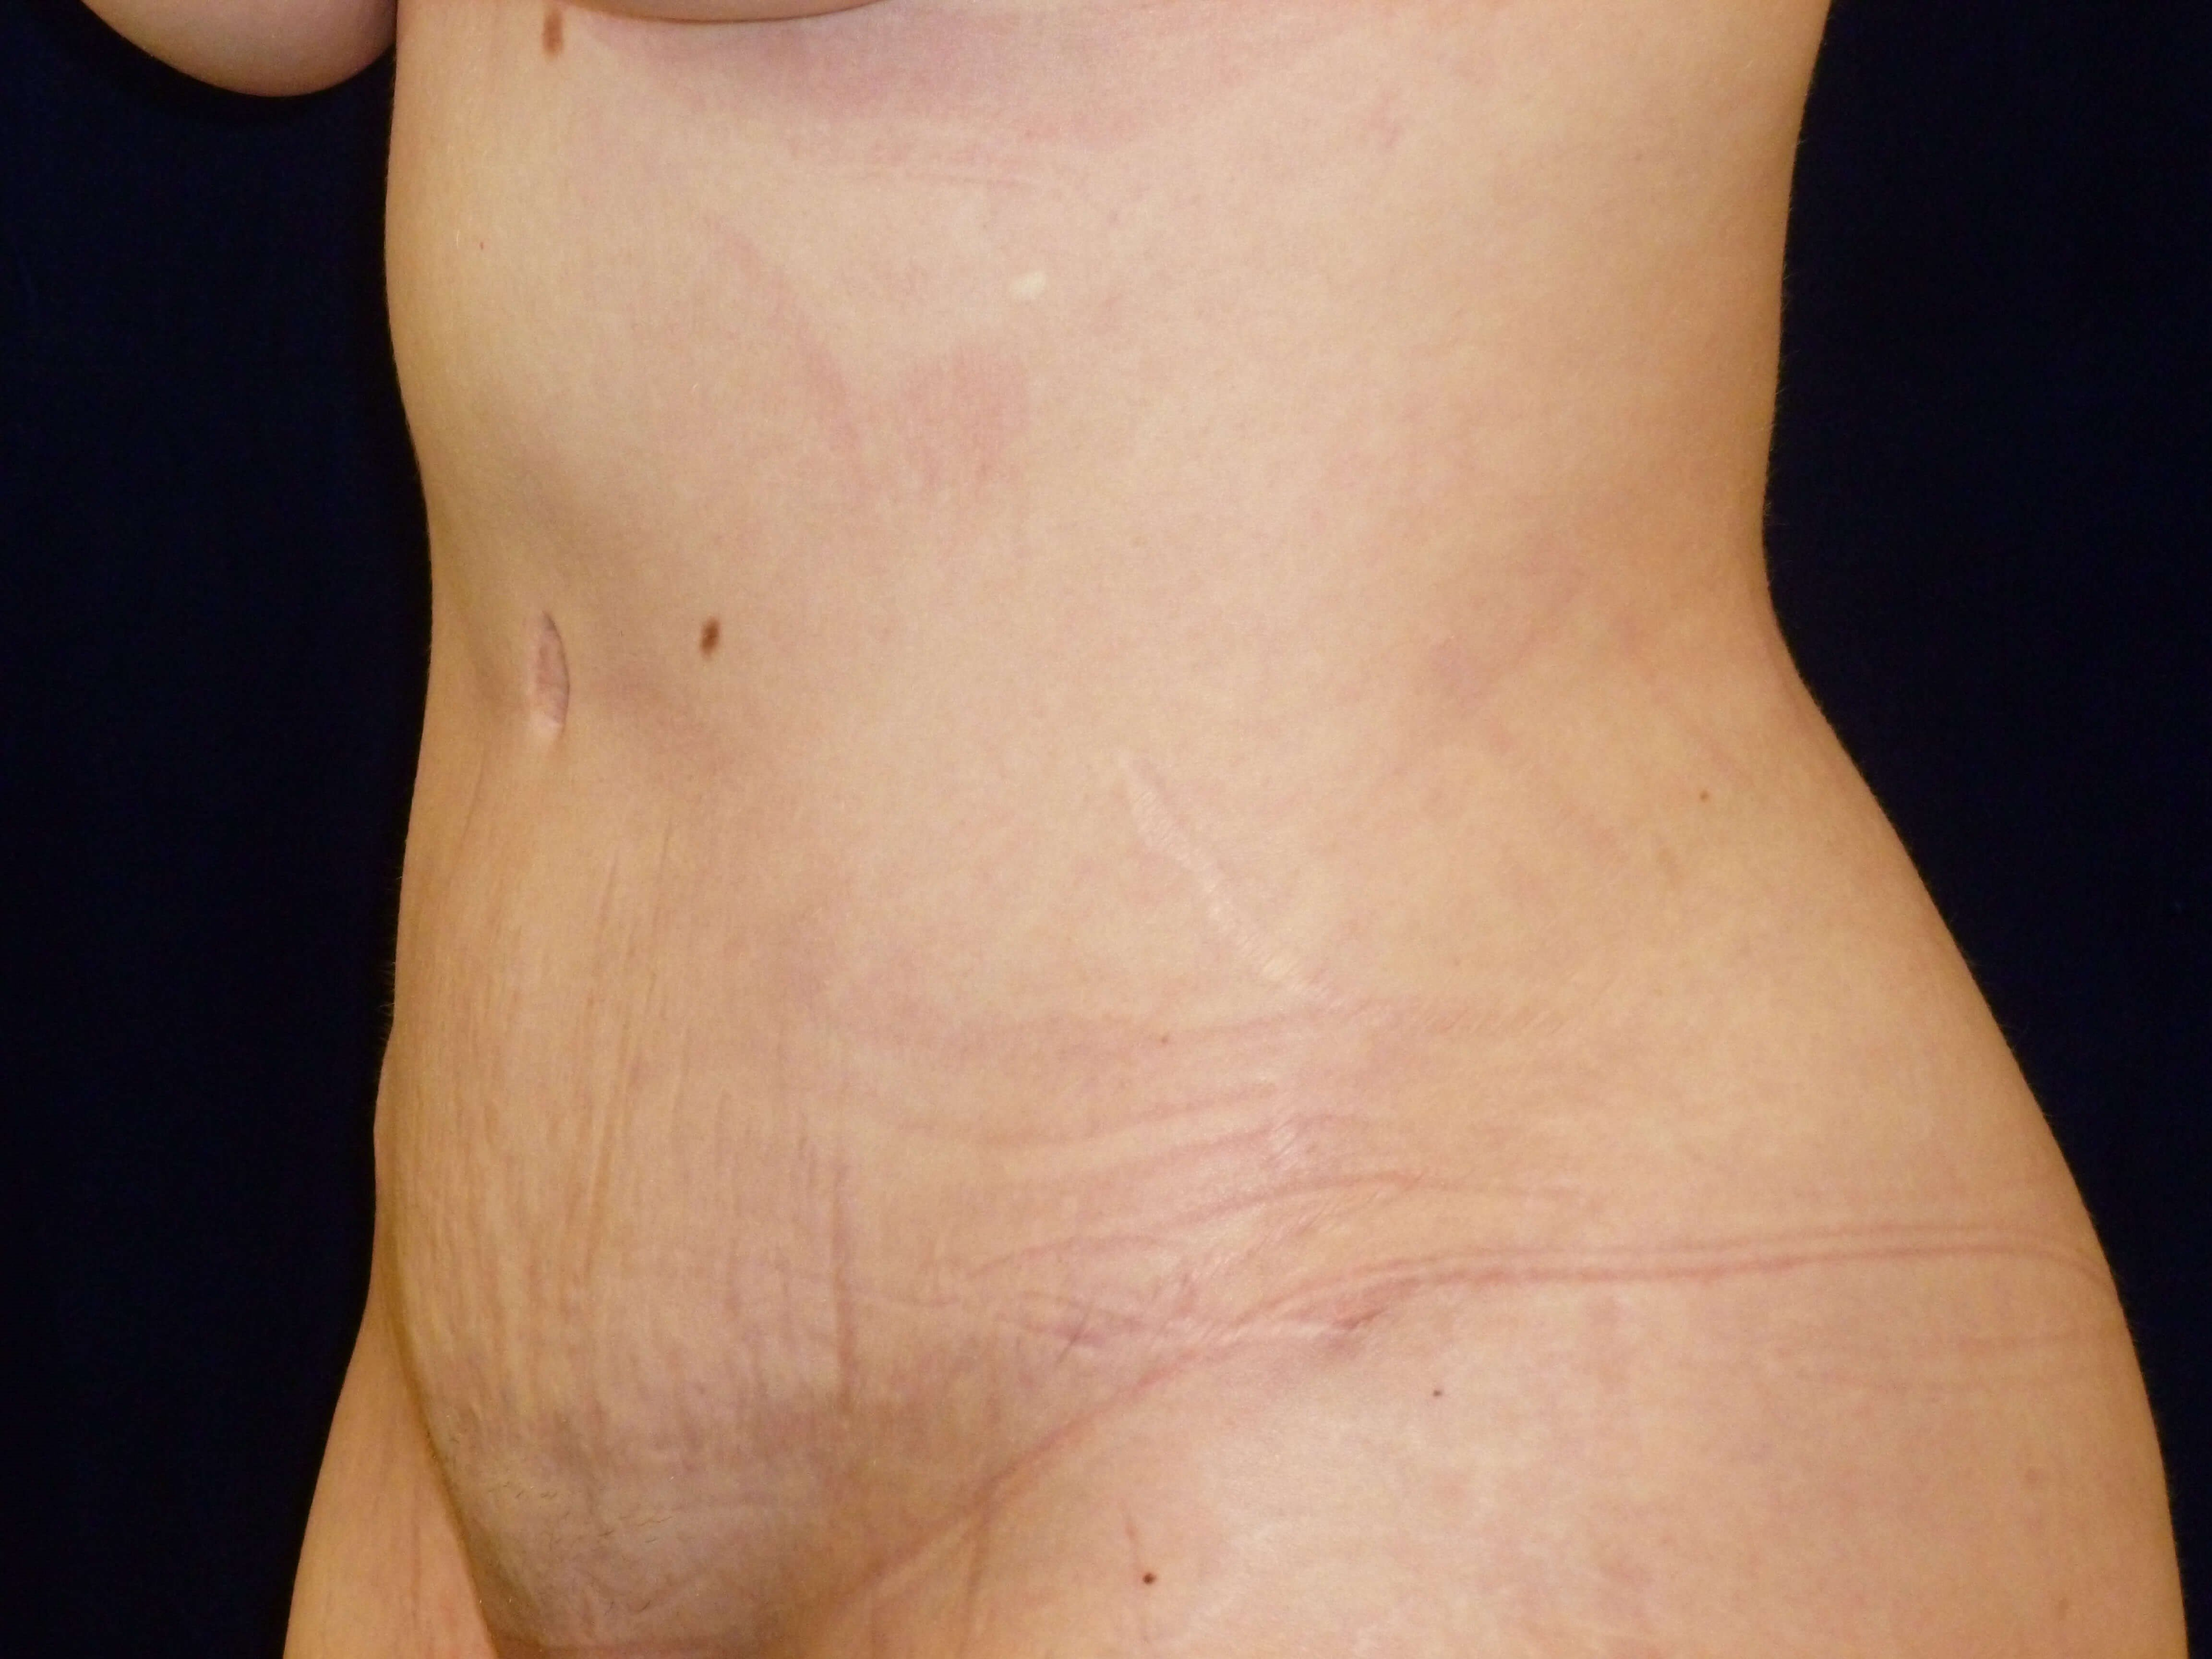 THREE QUARTER LEFT VIEW After Tummy Tuck and Lipo